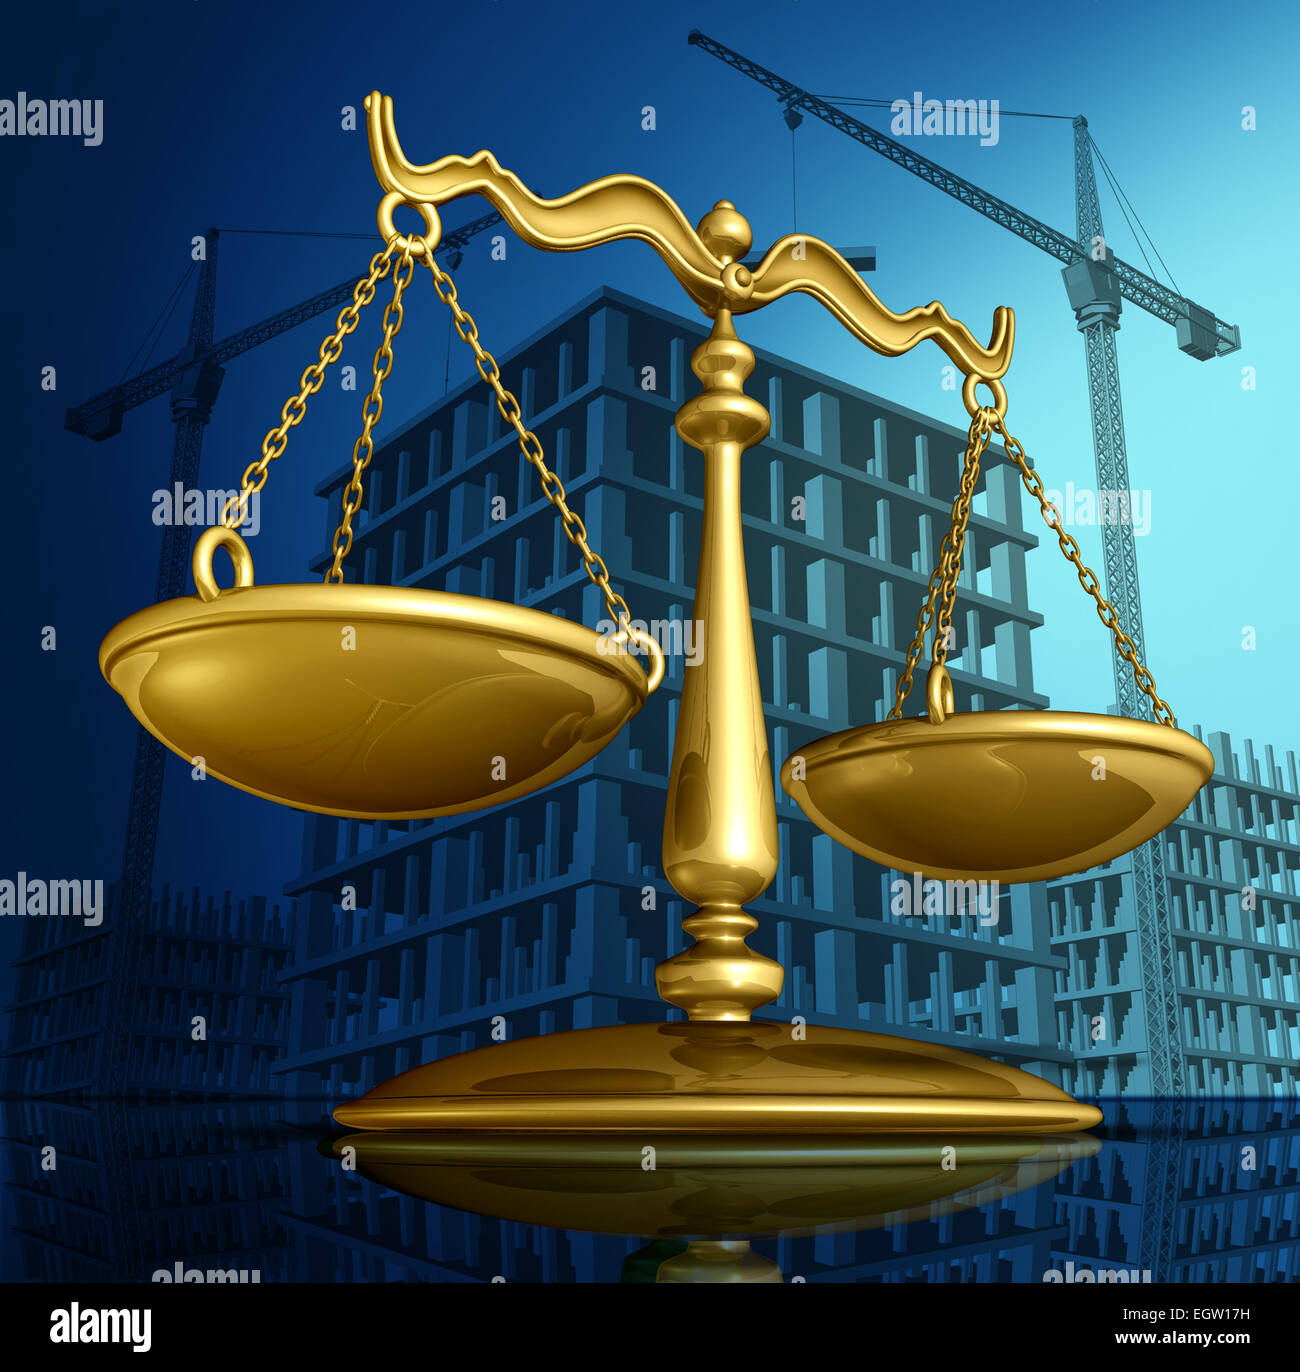 Construction law concept as a justice scale over a working building site with cranes and a structure being built - Stock Image